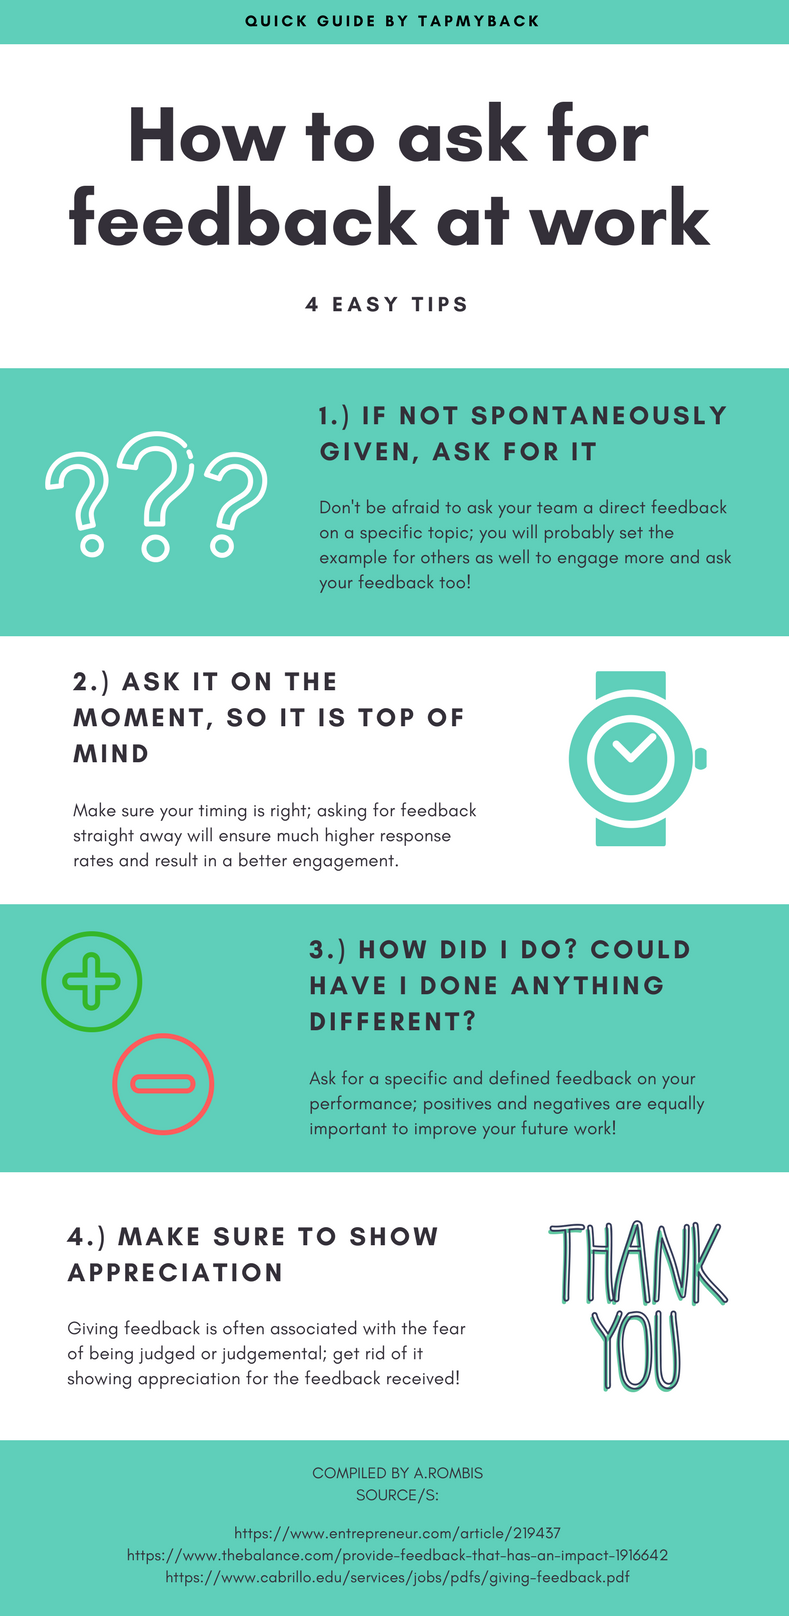 How to ask for feedback at work - 4 steps - Tap My Back